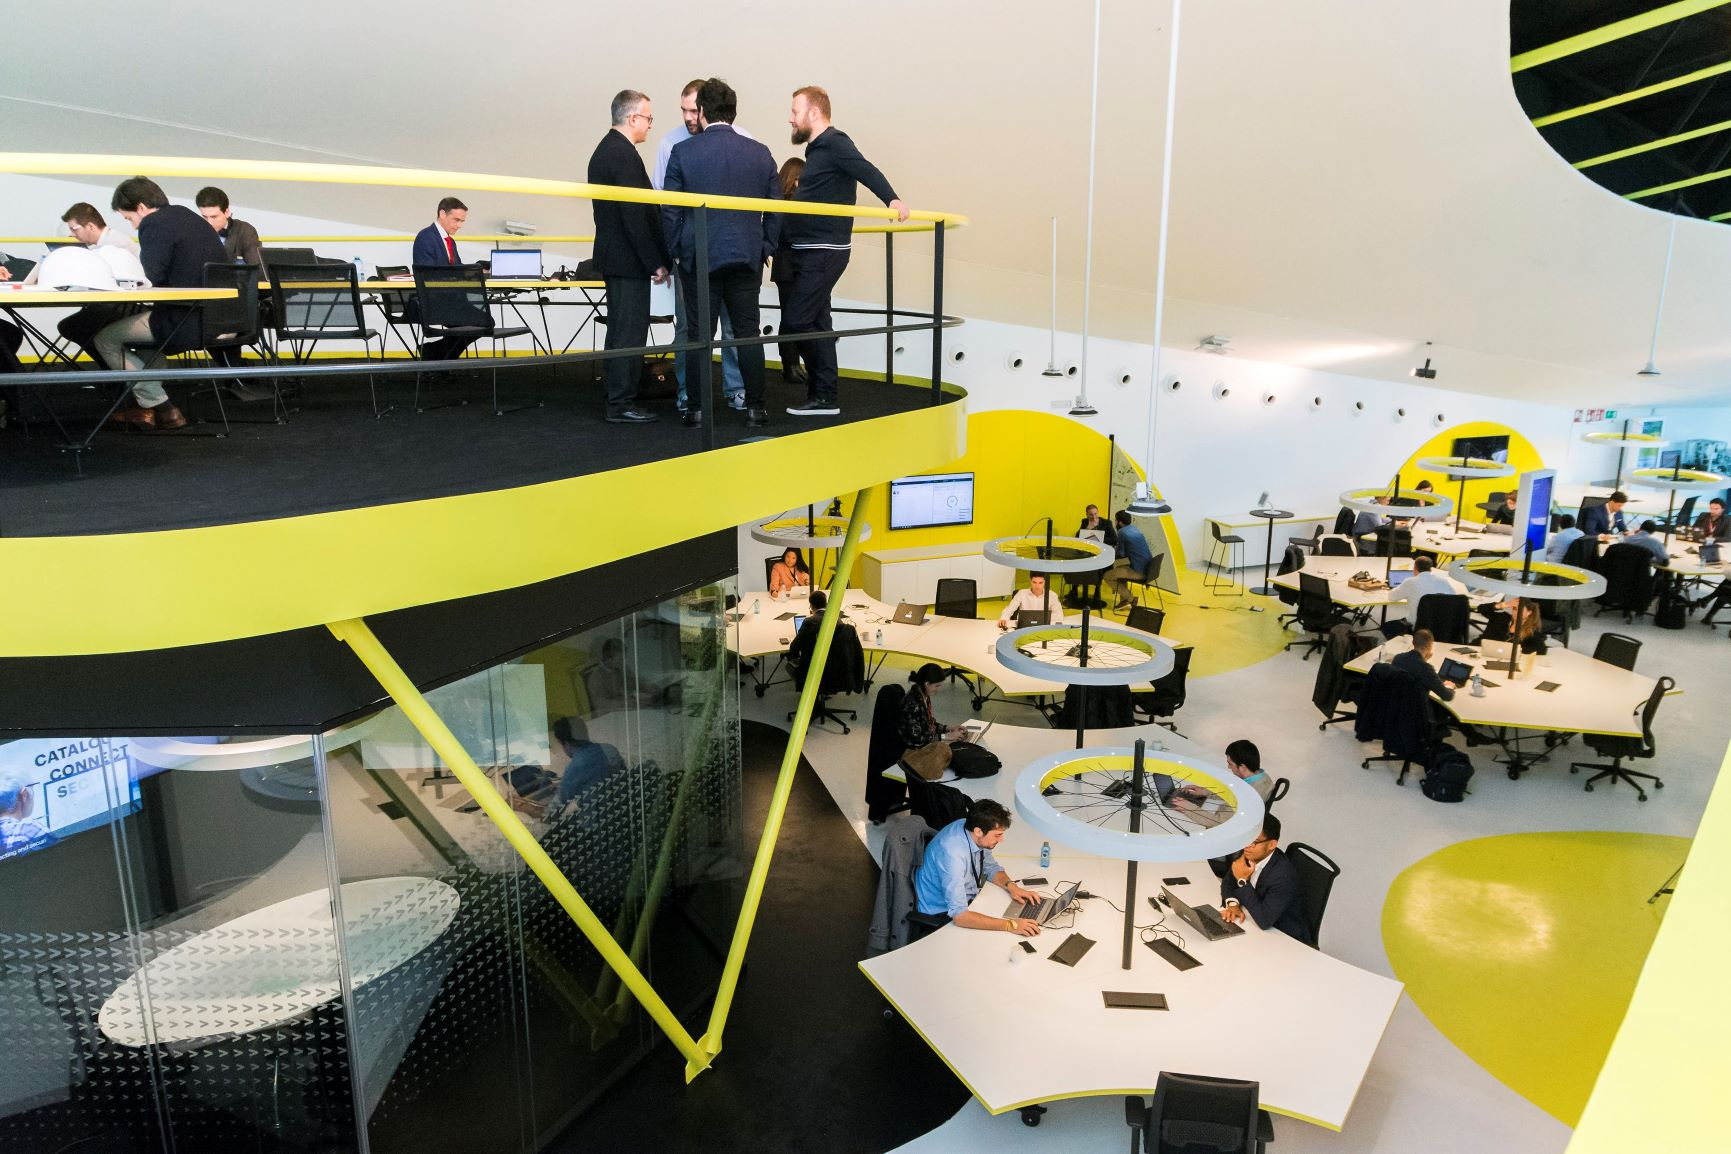 -New Industry X.0 Centre of Accenture in Bilbao